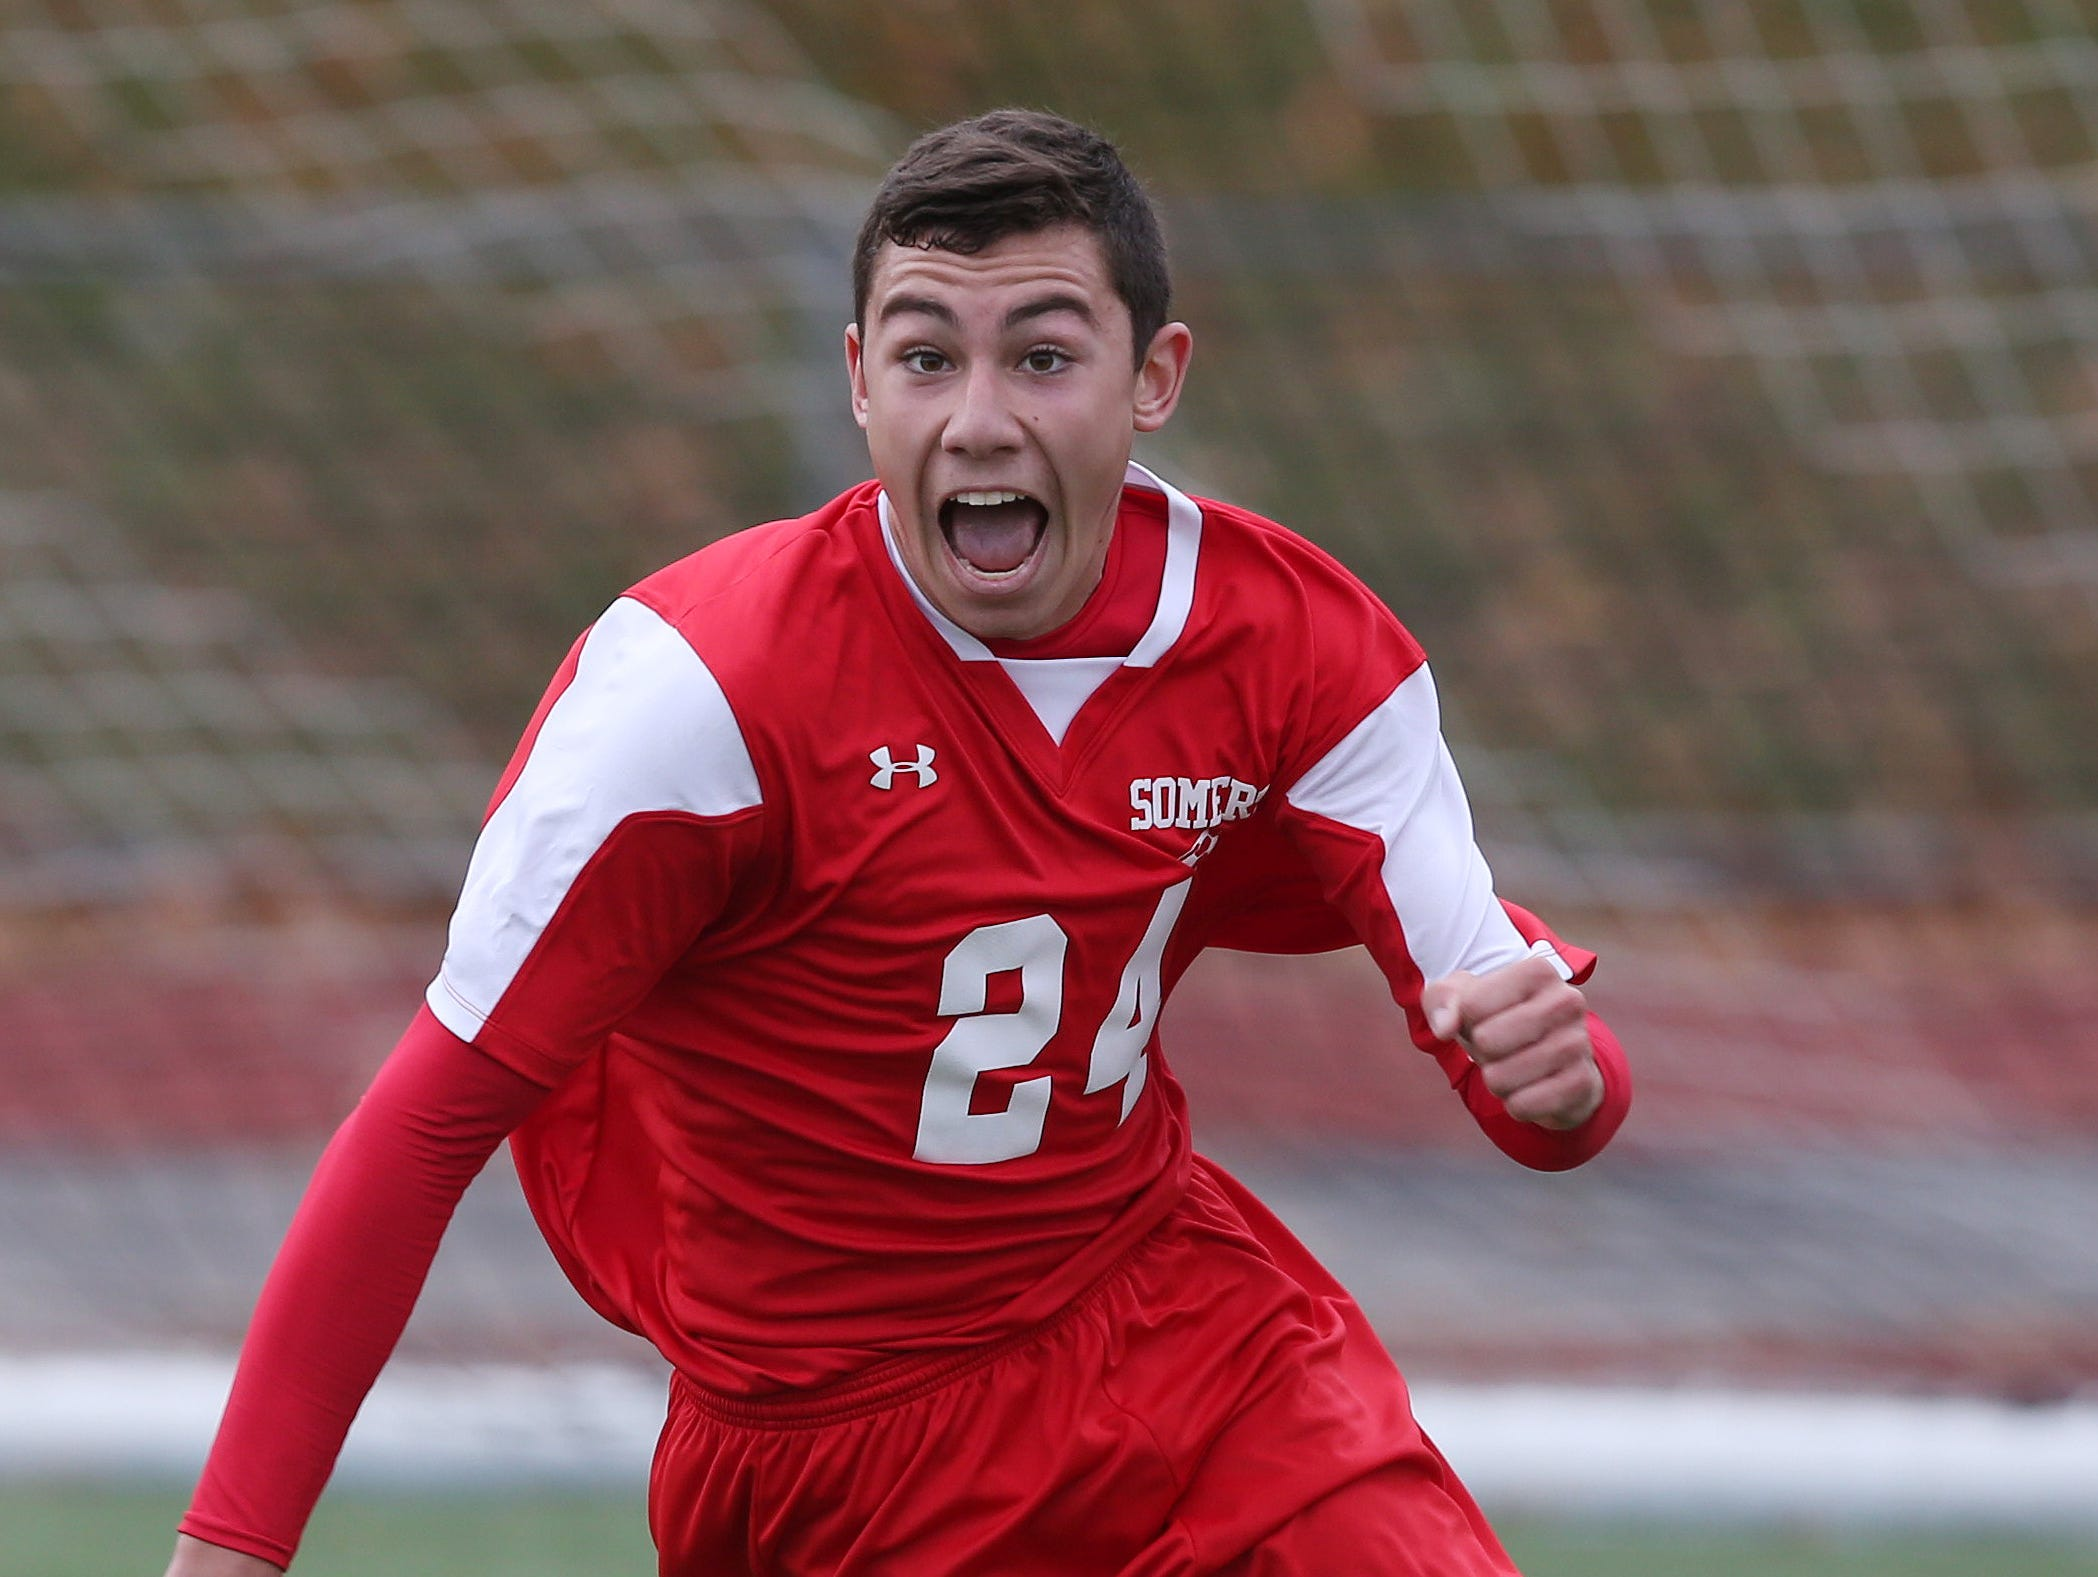 Somers' Andrew Lasher (24) celebrates his game winning goal against Pearl River in the boys soccer Section 1 Class A championship game at Lakeland High School in Shrub Oak High School Oct. 29, 2016. Somers won the game 1-0.